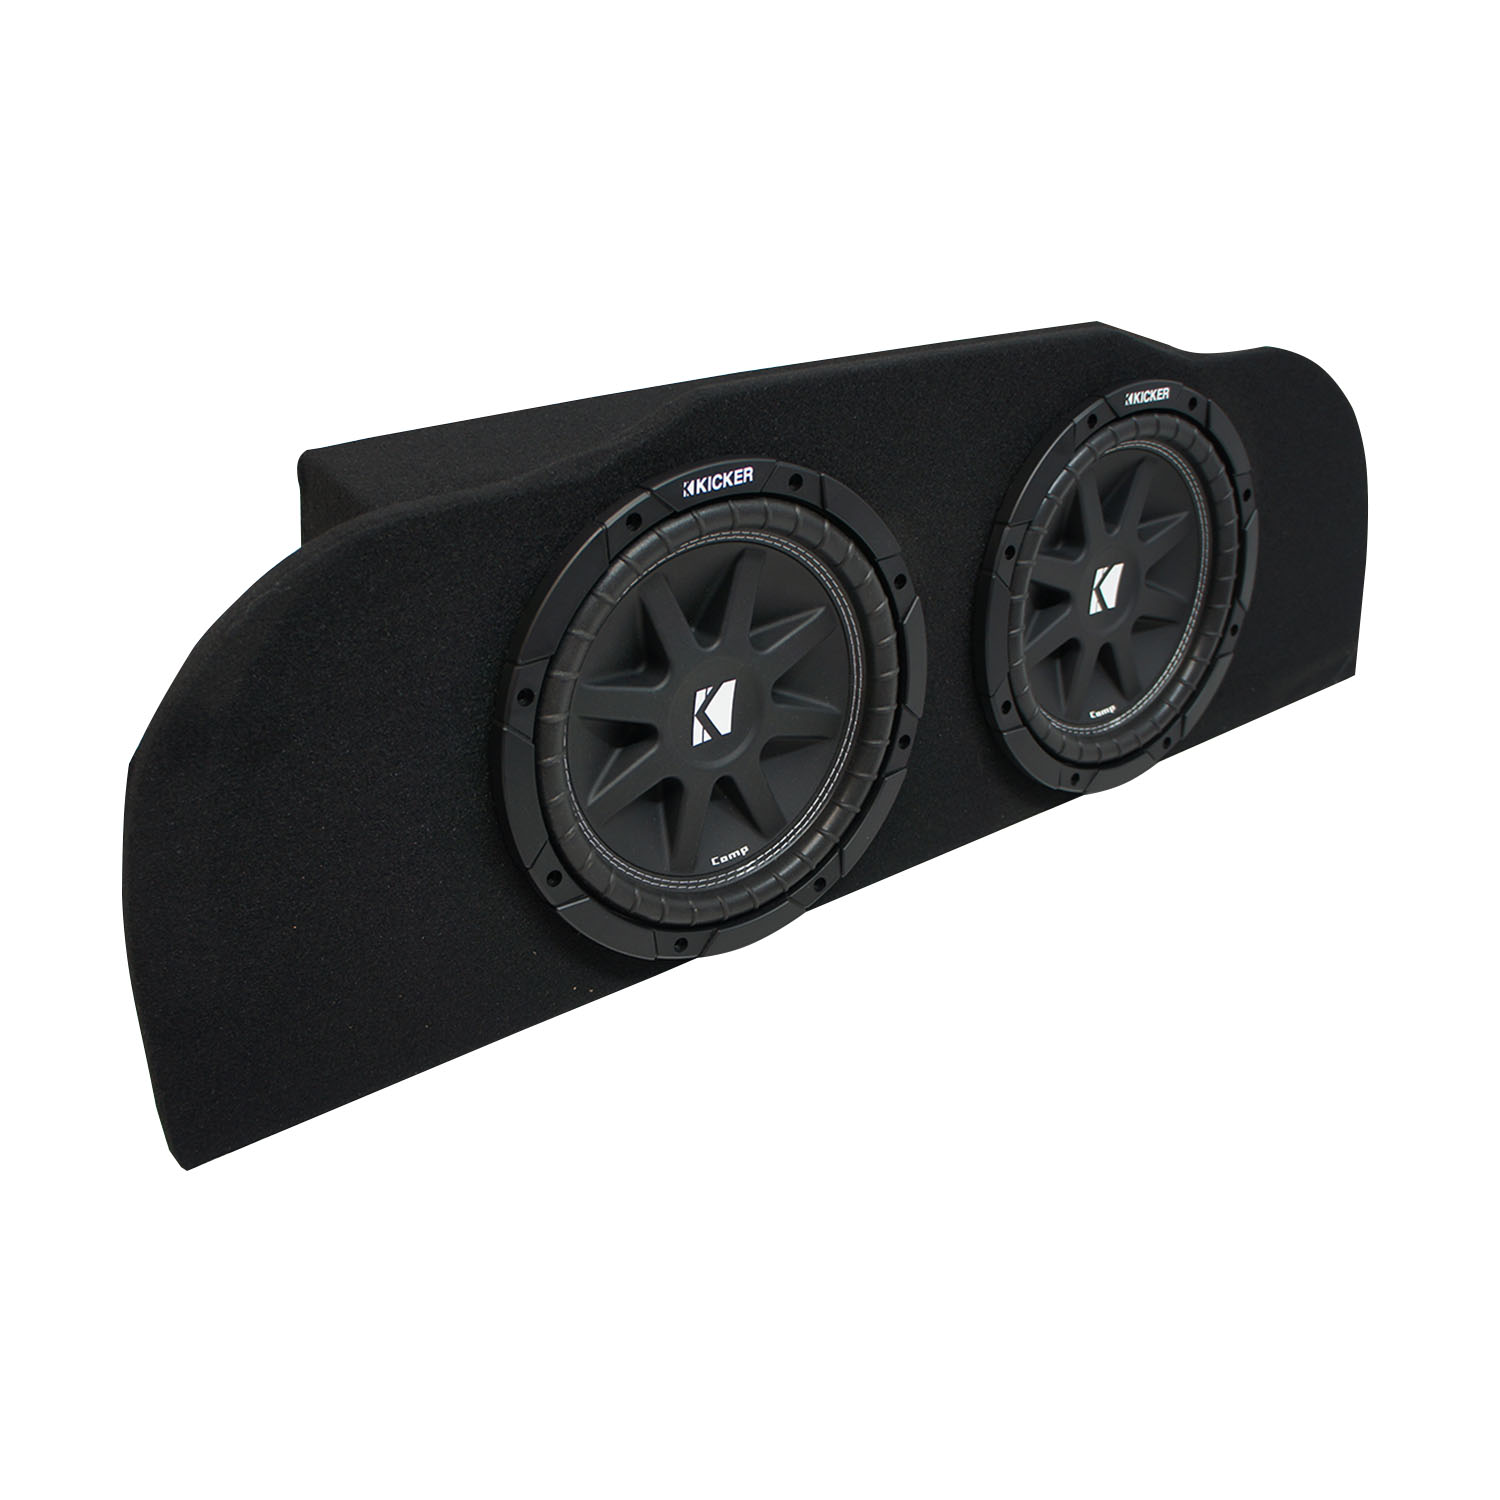 03 15 Fits Infiniti G35 Coupe Kicker Comp C10 Subwoofer Dual 10 Sub Cvr Inch In Box Addition 12 Wiring 2 Ohm